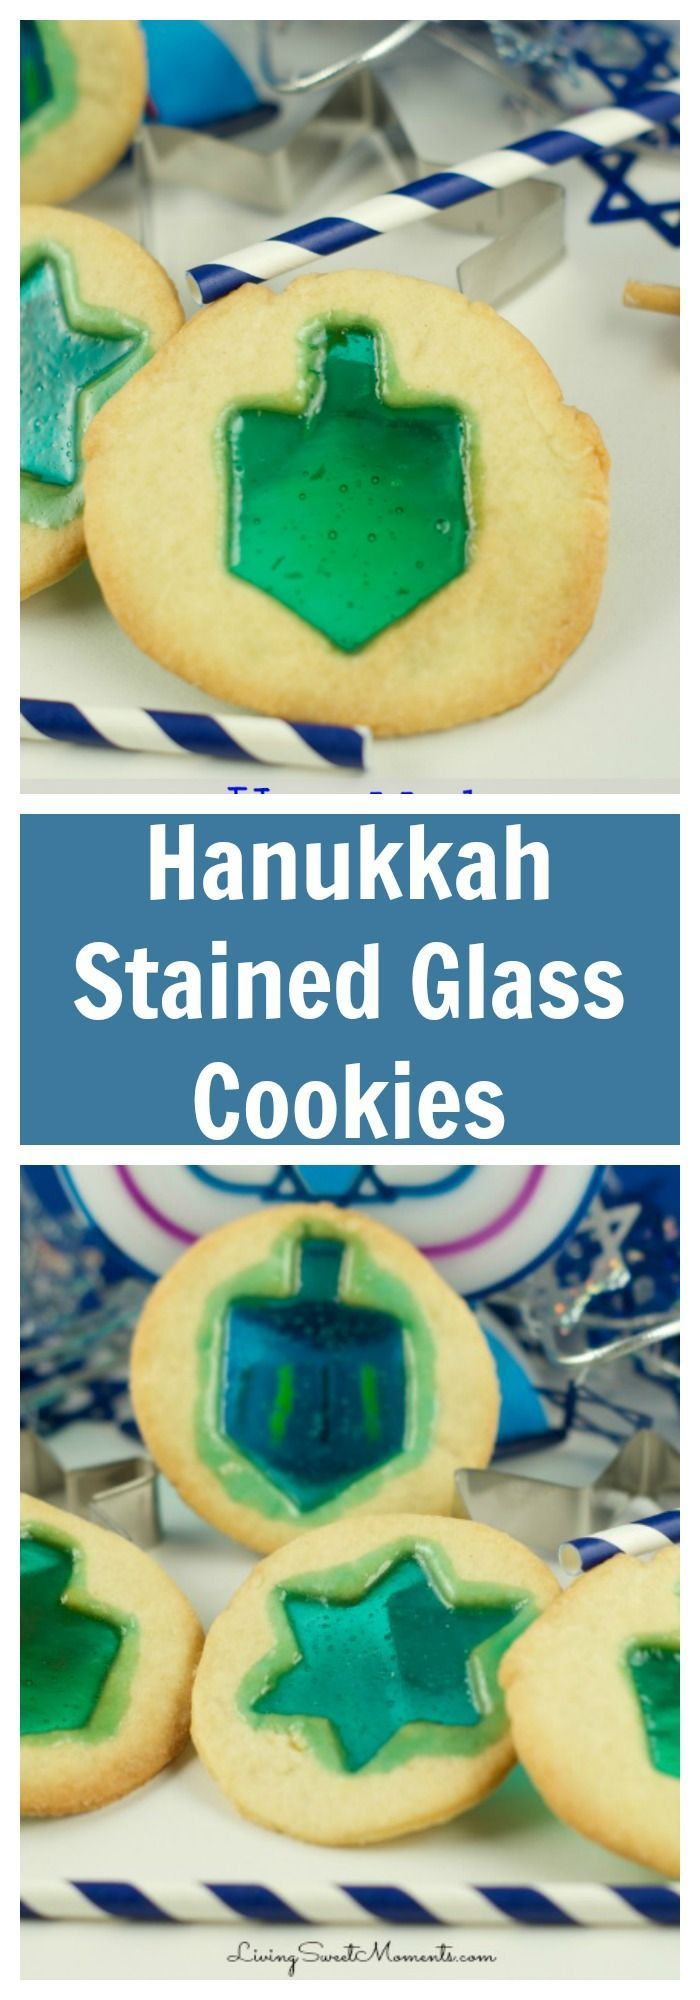 Delicious Hanukkah stained glass cookies. So easy to make and fun with kids! Create this delicious effect in few easy steps. Sweet, crumbly and oh so yummy. More Hanukkah recipes at http://livingsweetmoments.com  via @Livingsmoments